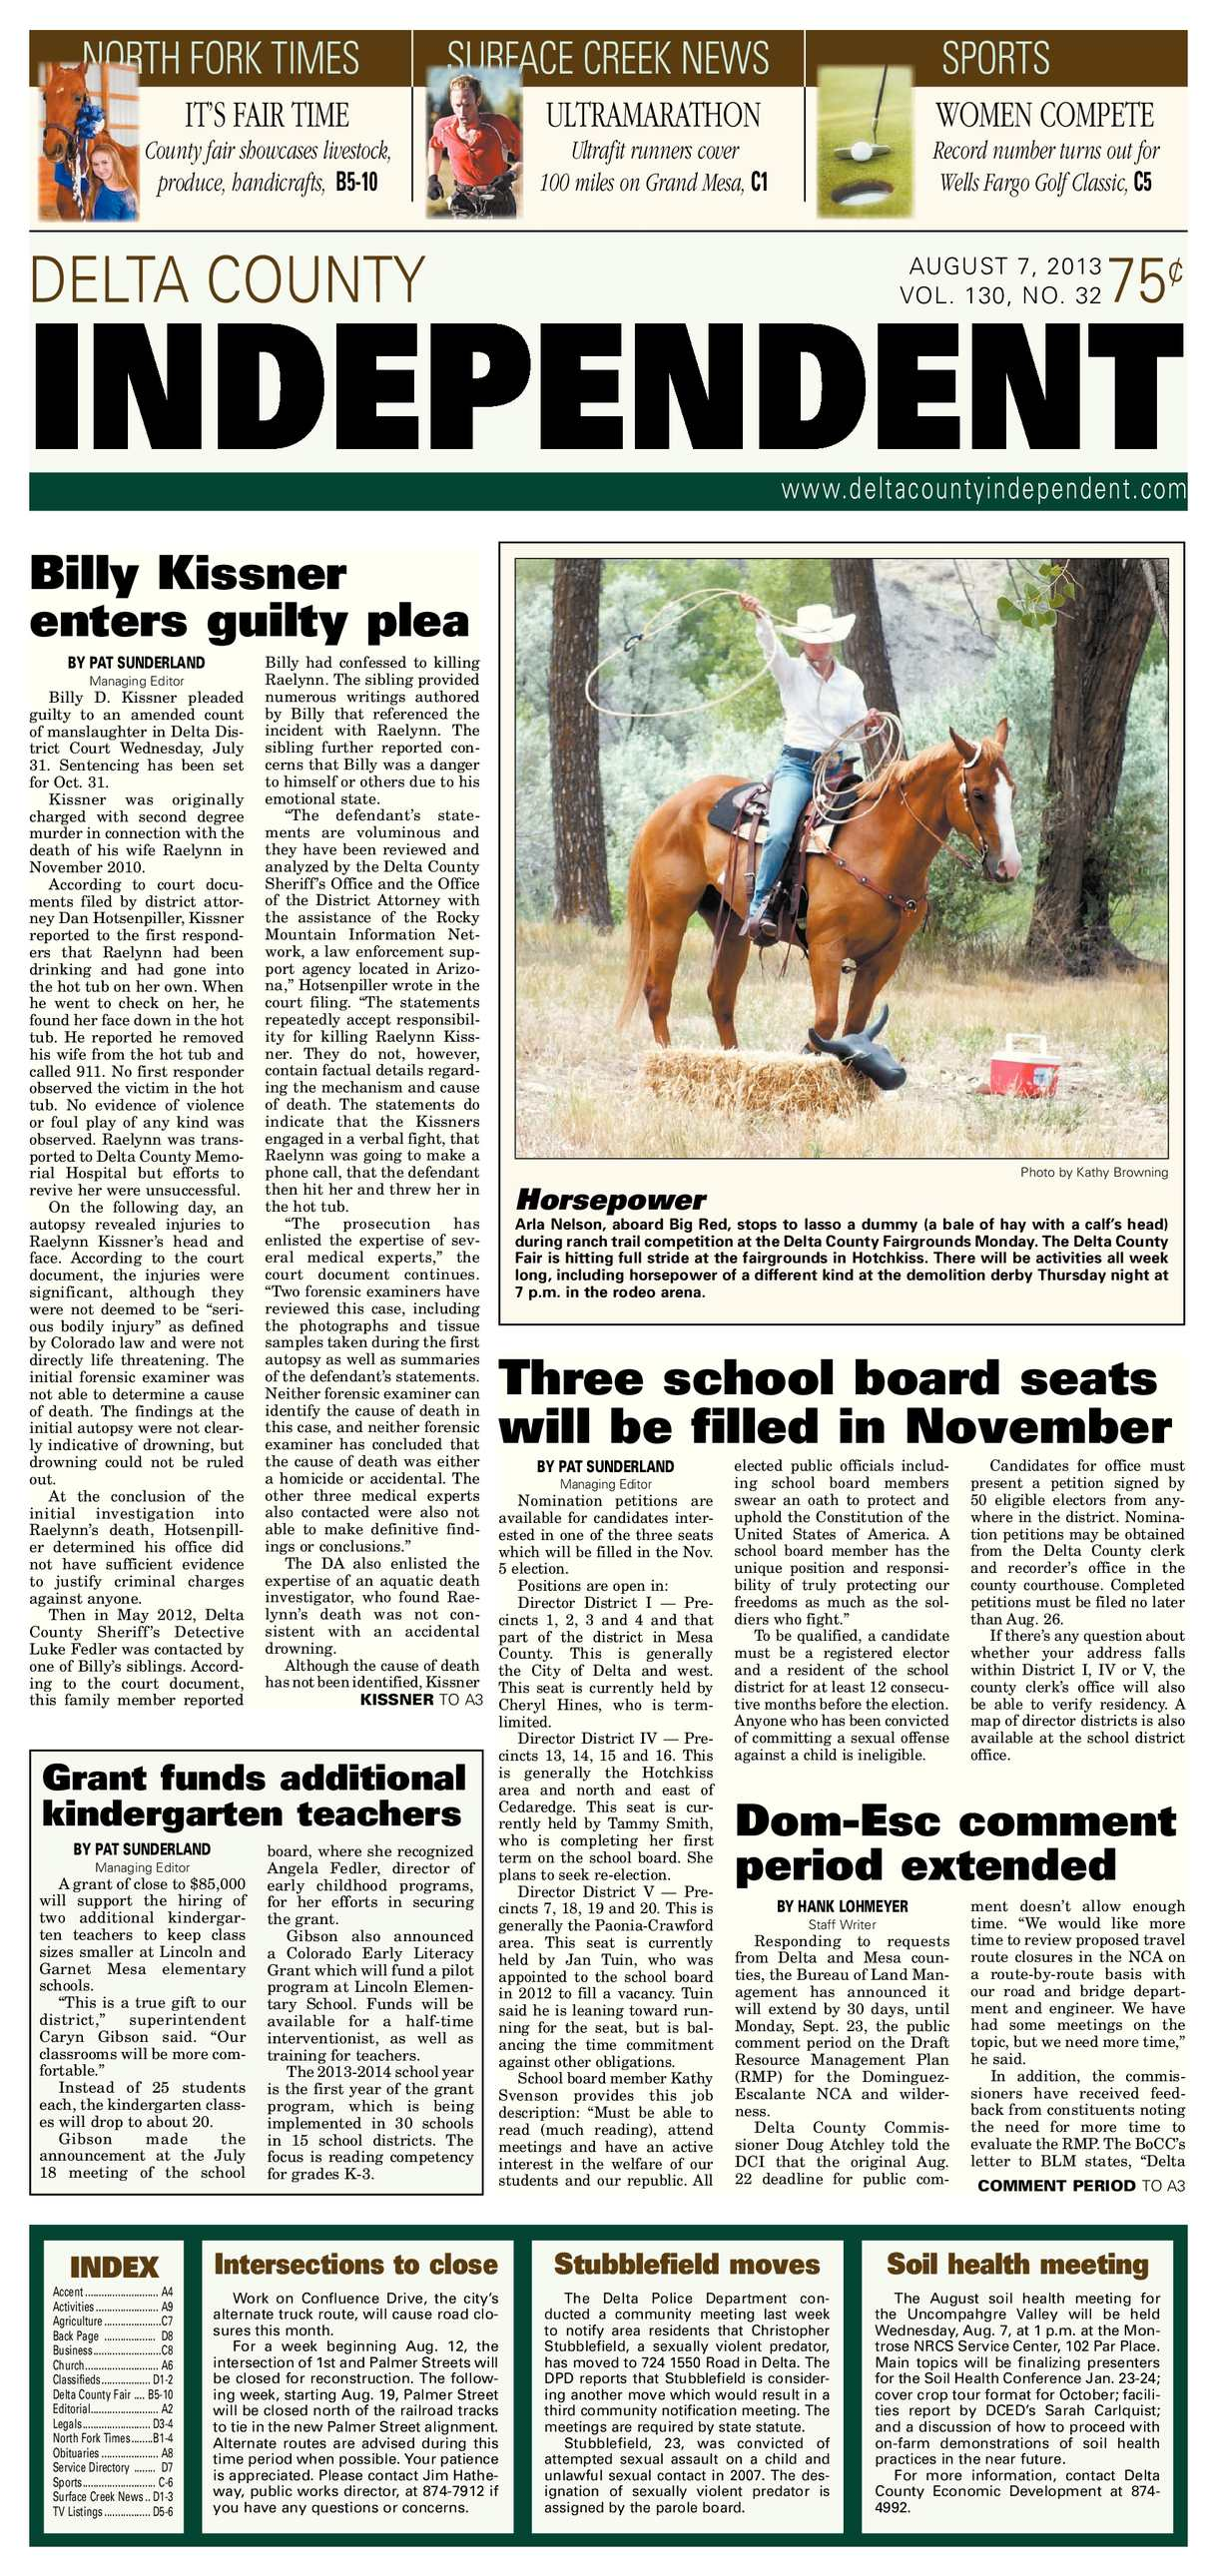 Calaméo - Delta County Independent, Aug. 7, 2013